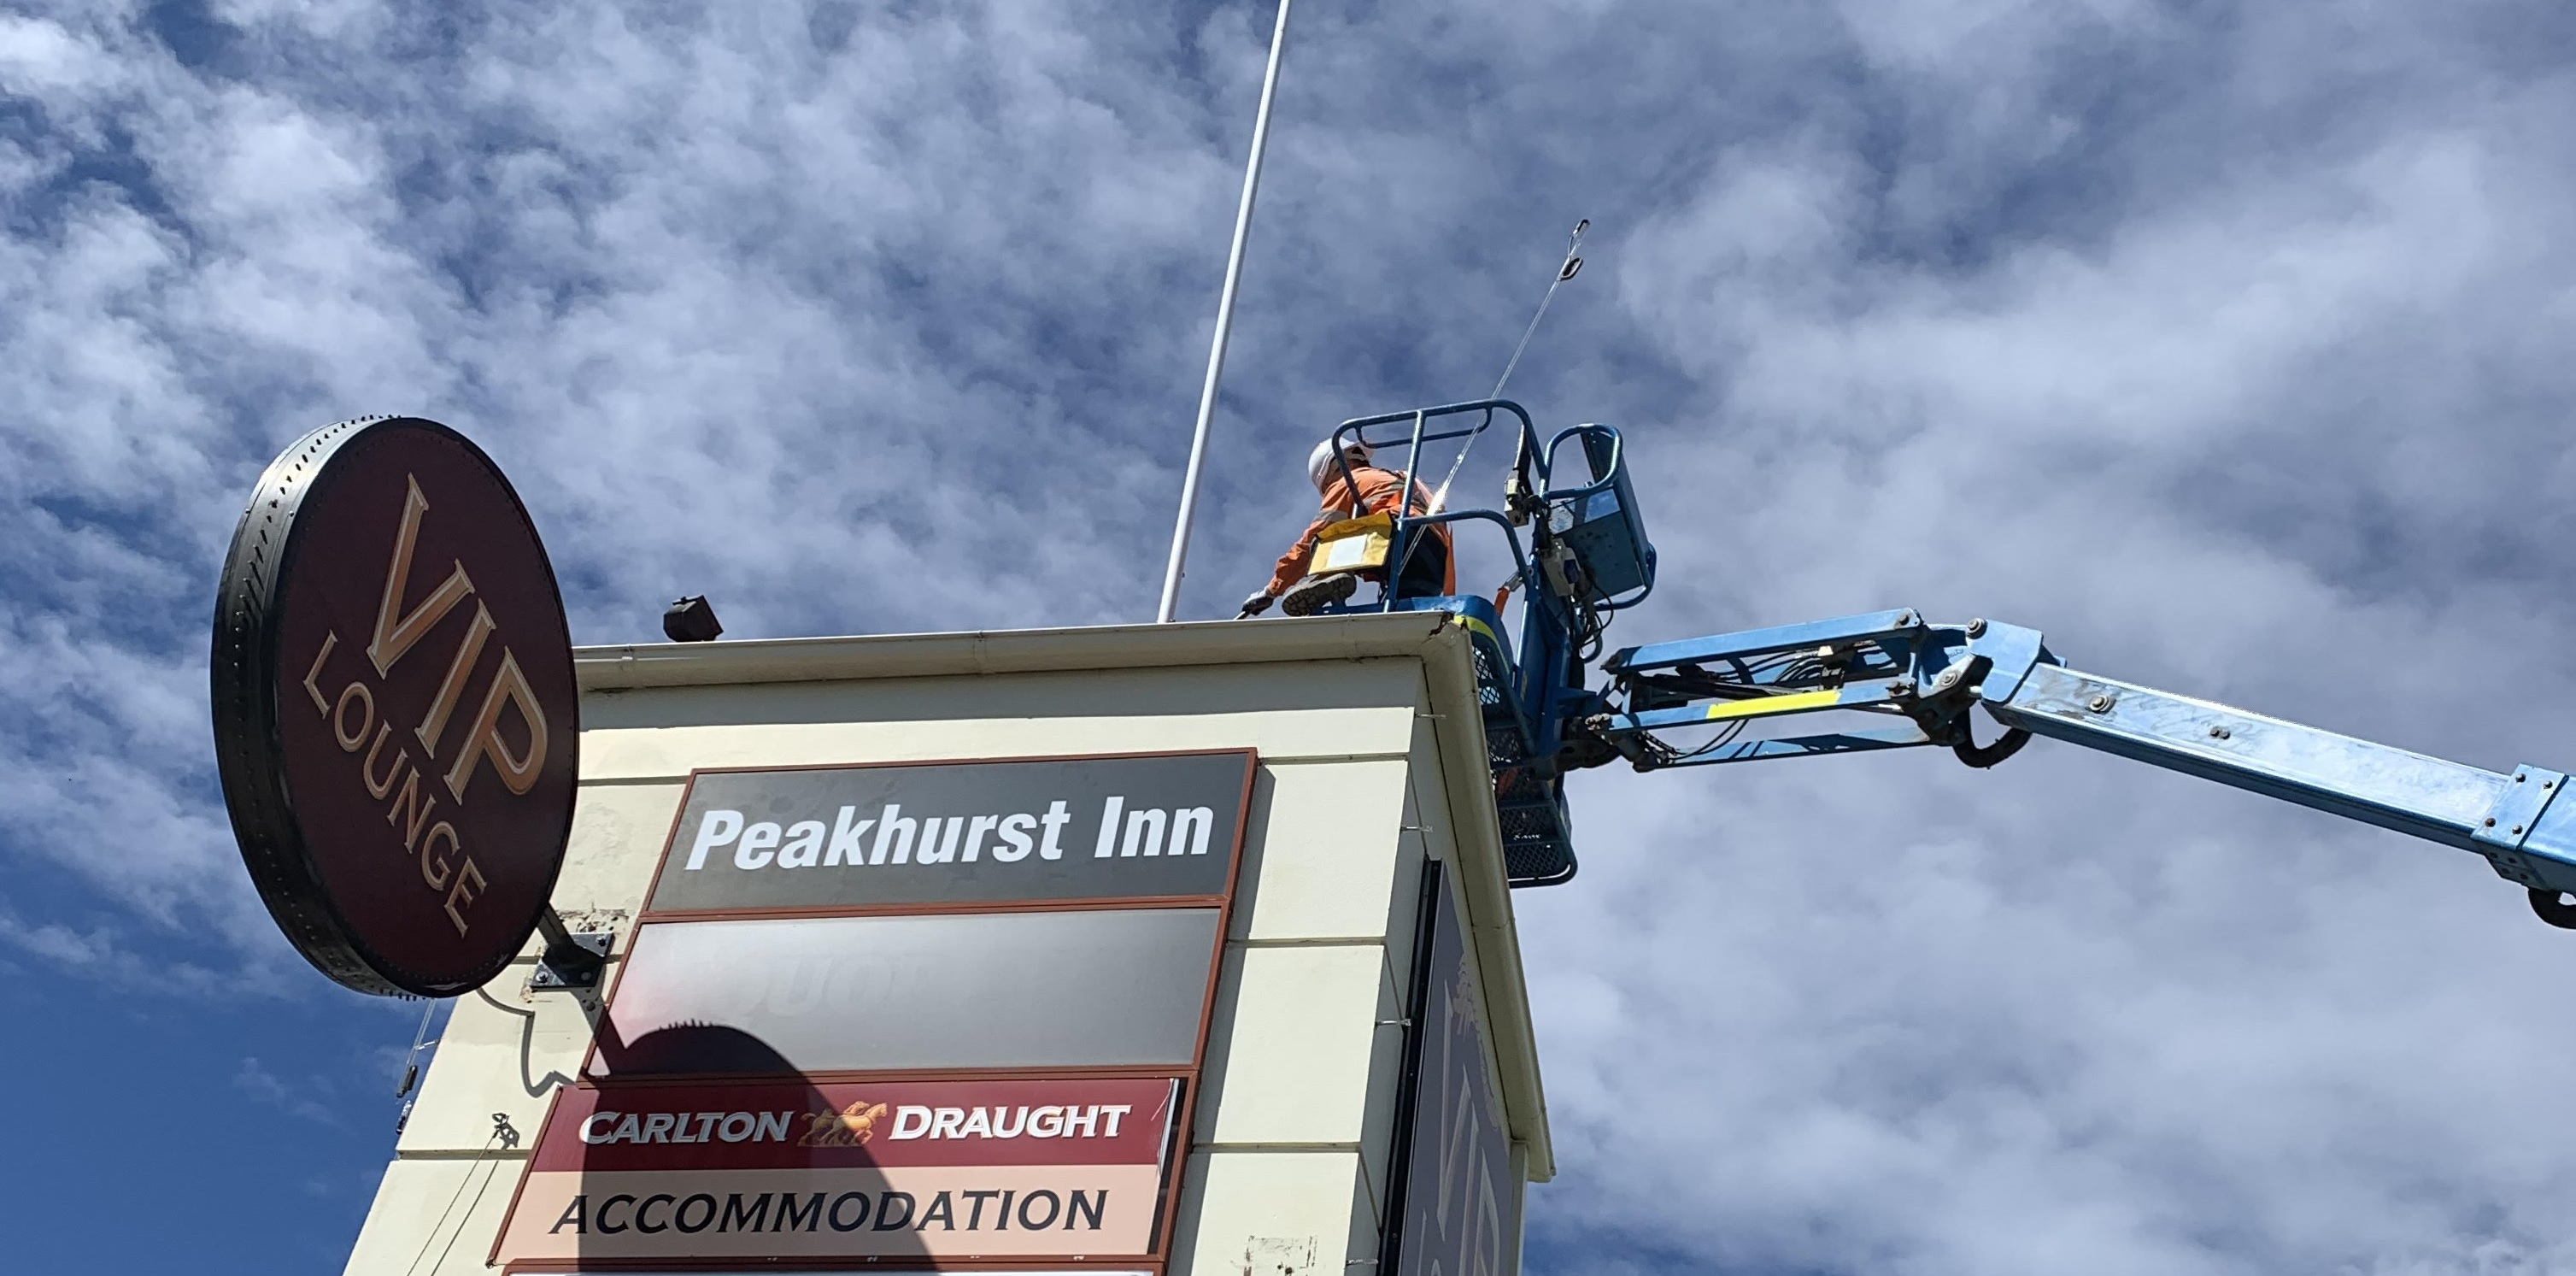 Demolition of a tower roof structure and signage removal in Peakhurst